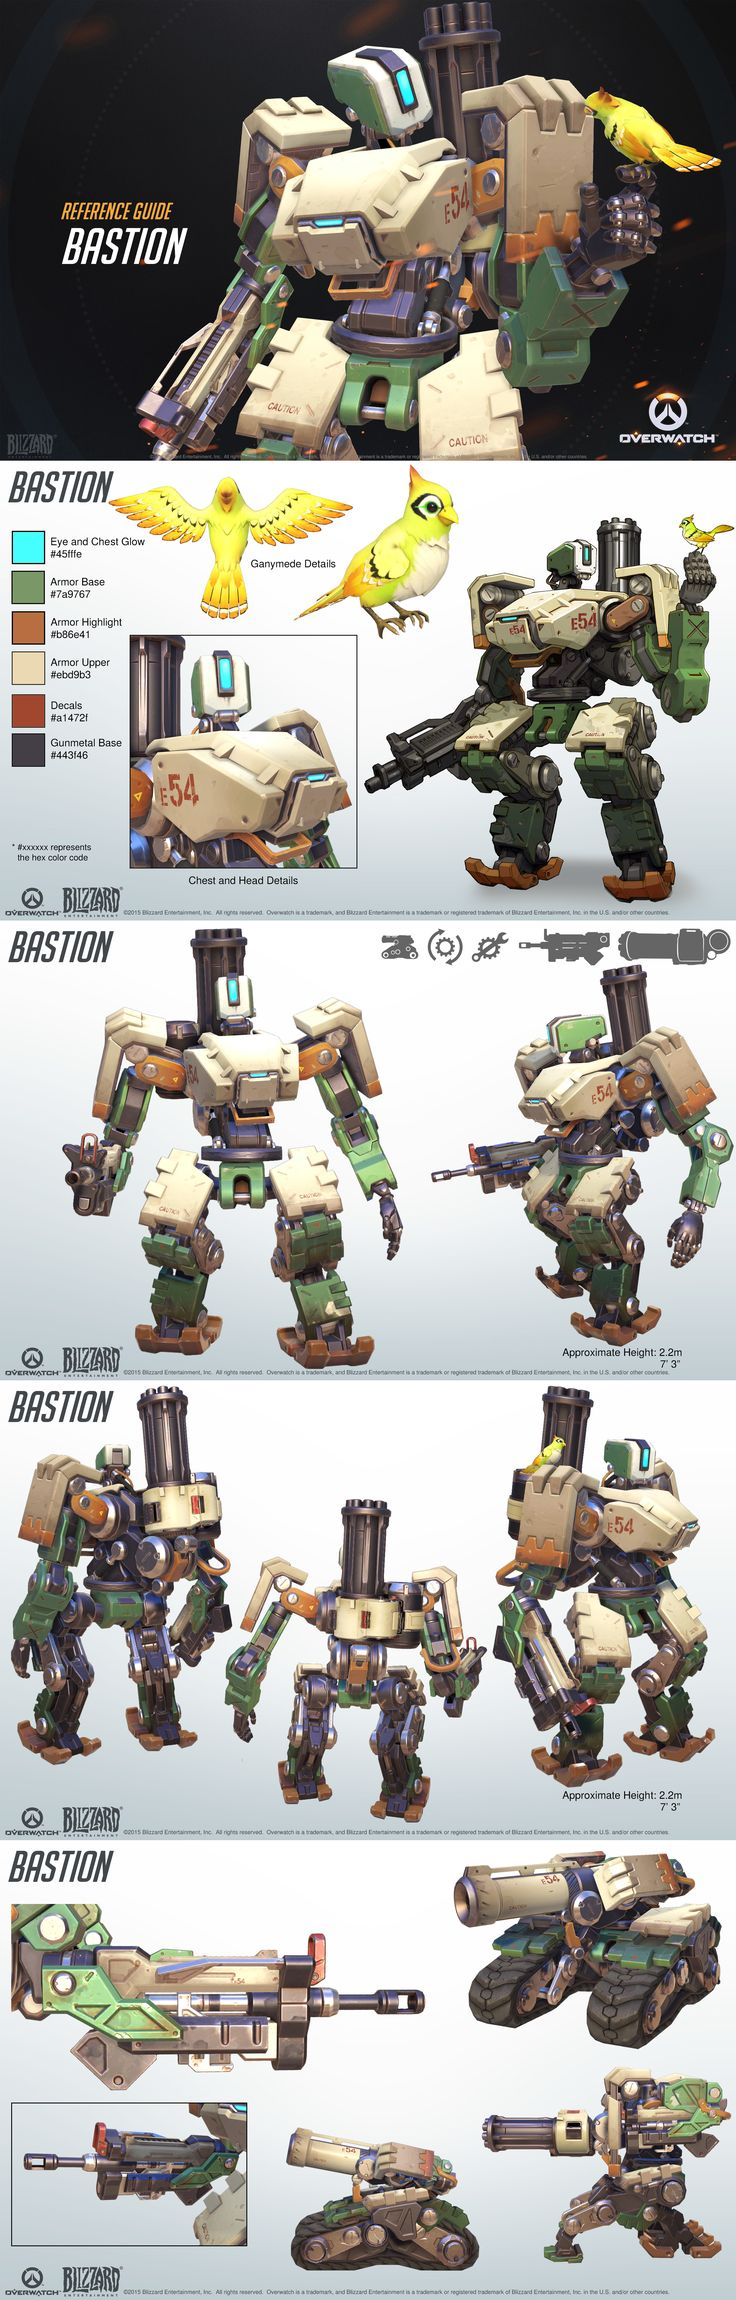 http://vignette4.wikia.nocookie.net/overwatch/images/9/94/Bastion_Reference.jpg/revision/20160502195139 bastion